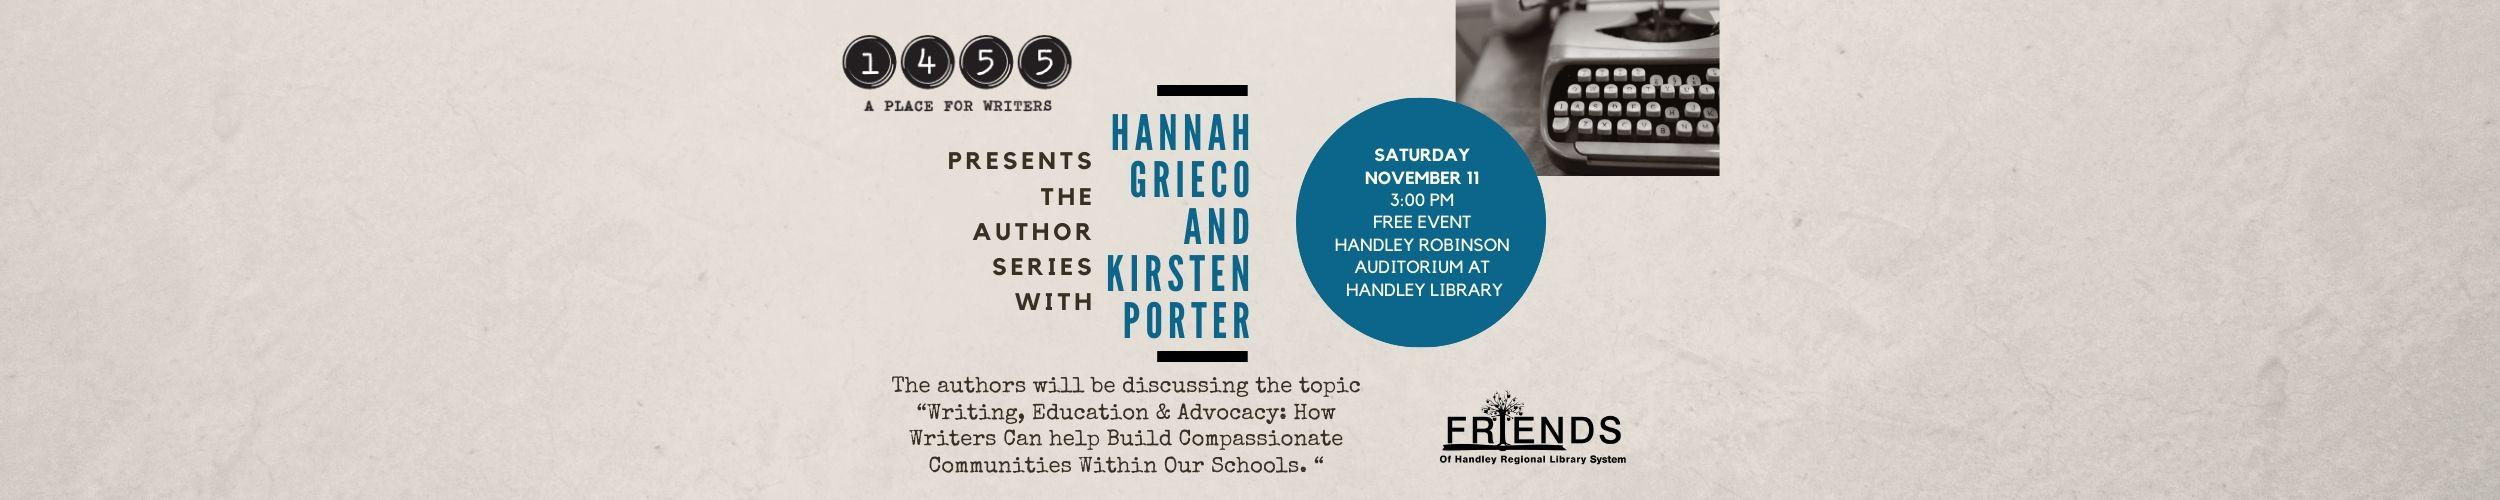 1455: Hannah Grieco and Kirsten Porter